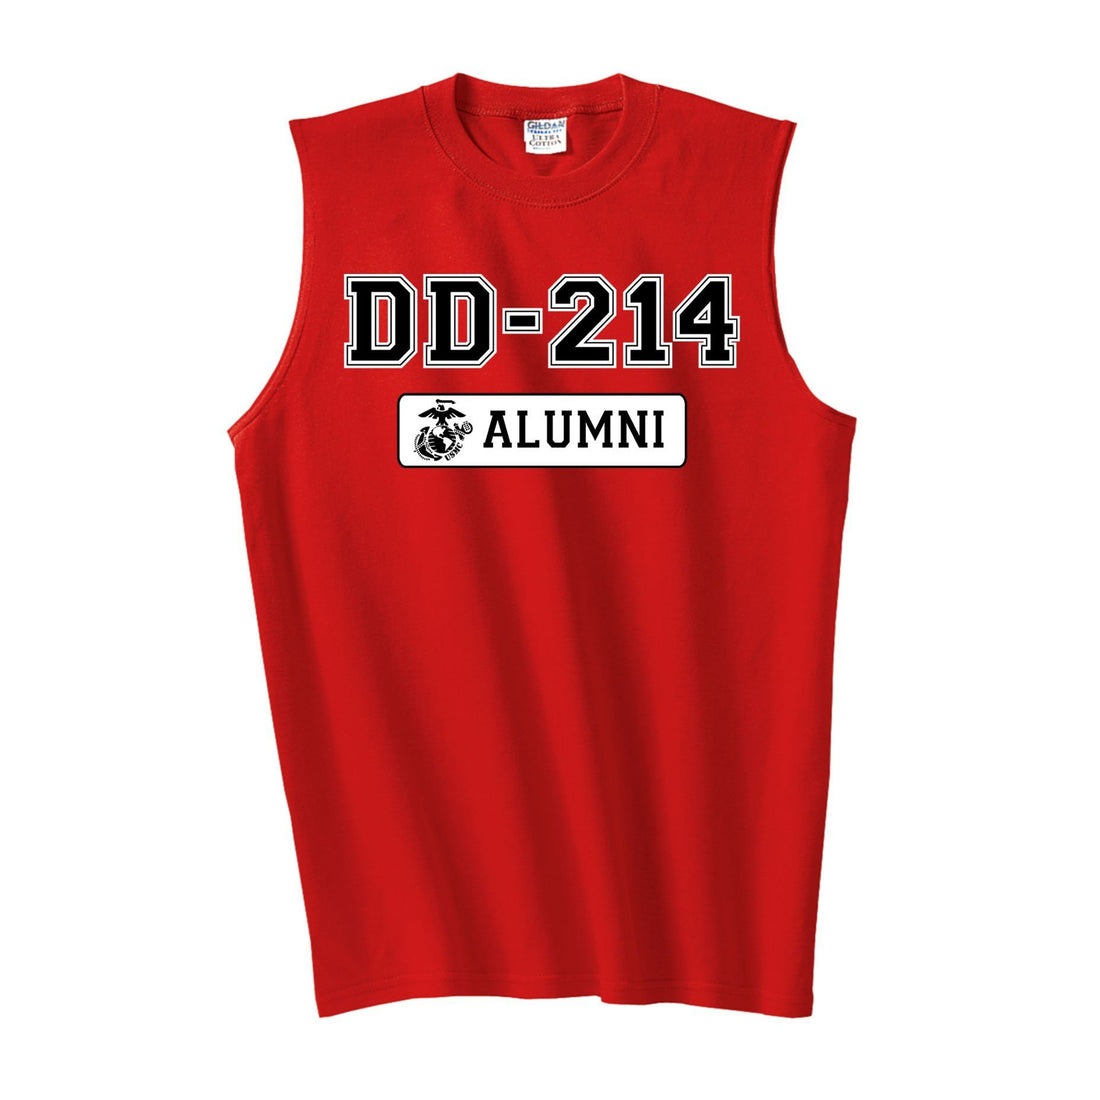 DD-214 Alumni Sleeveless